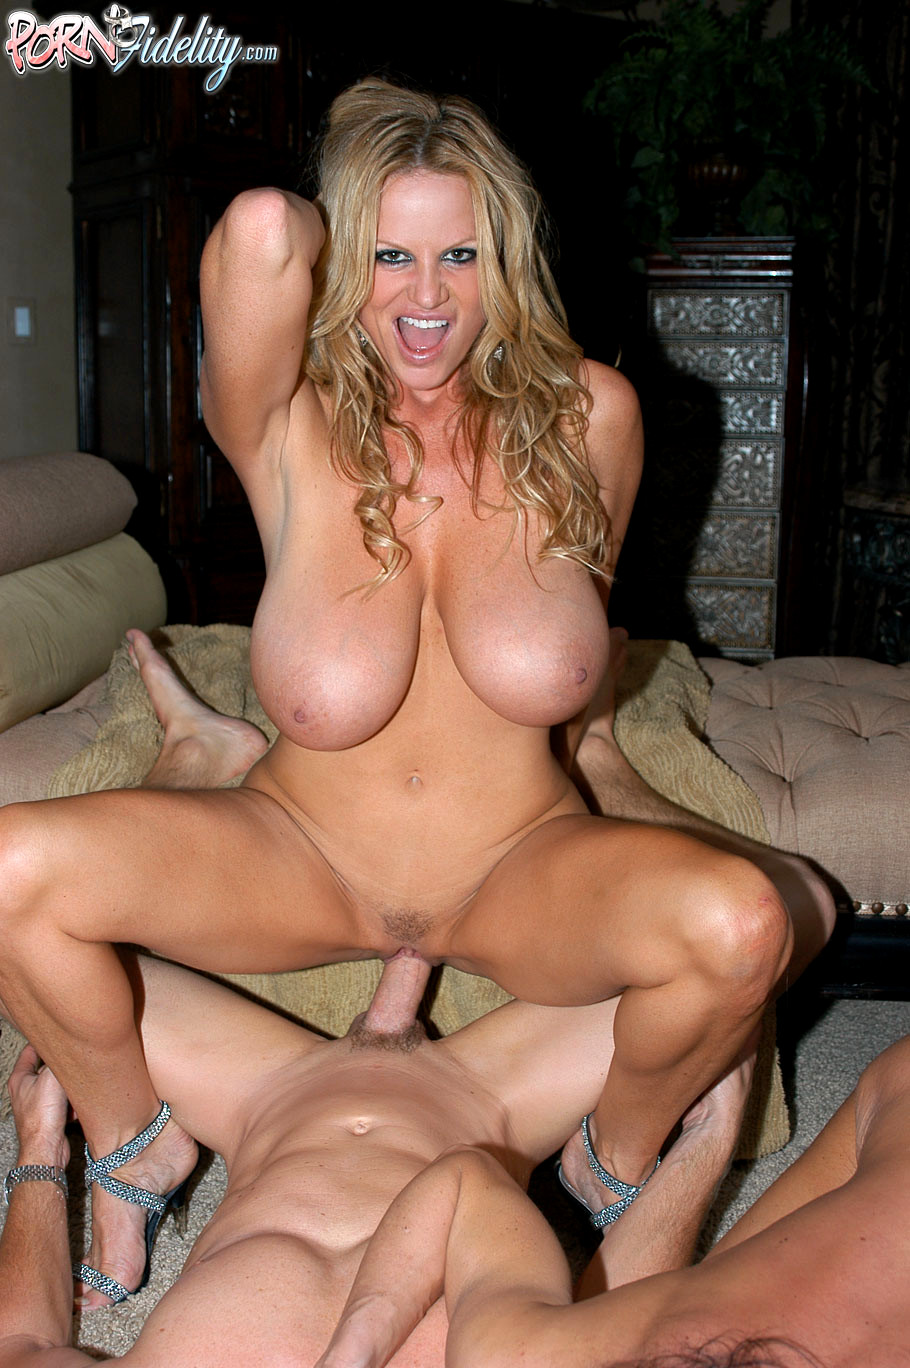 Kelly Madison Hot